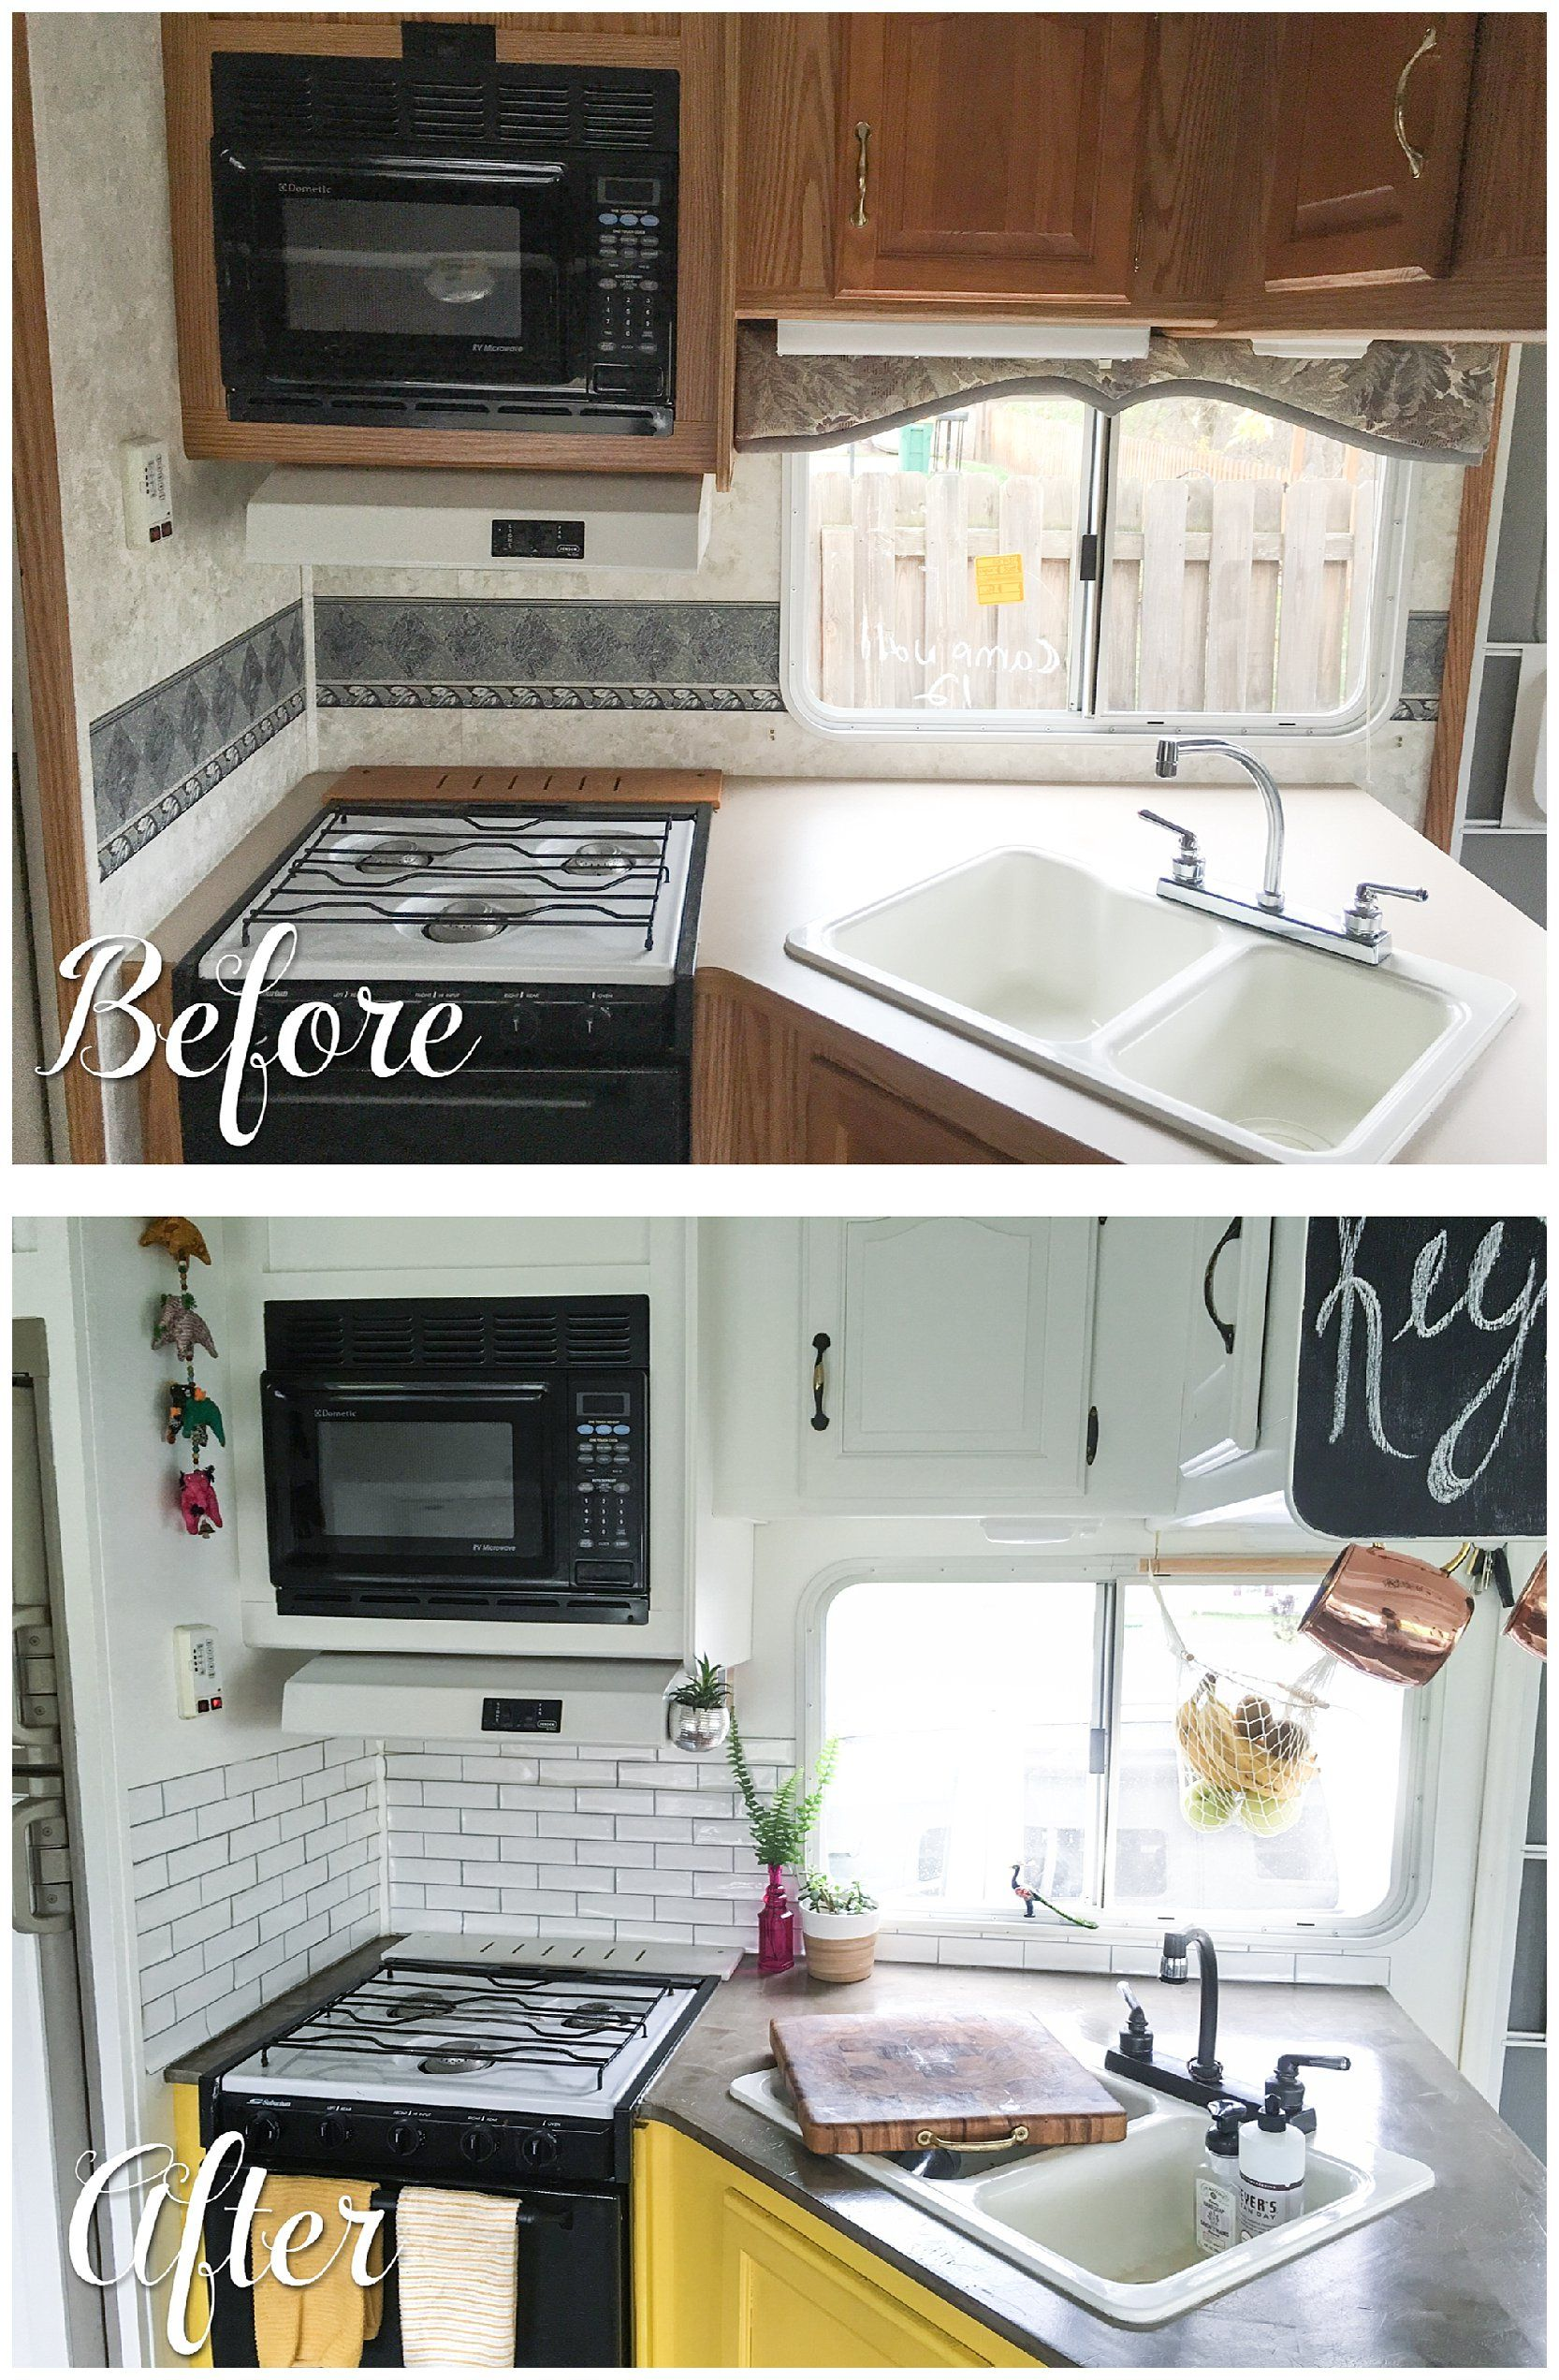 Kitchen Remodel Pictures Before And After before and after pictures of a rv kitchen renovation | camper